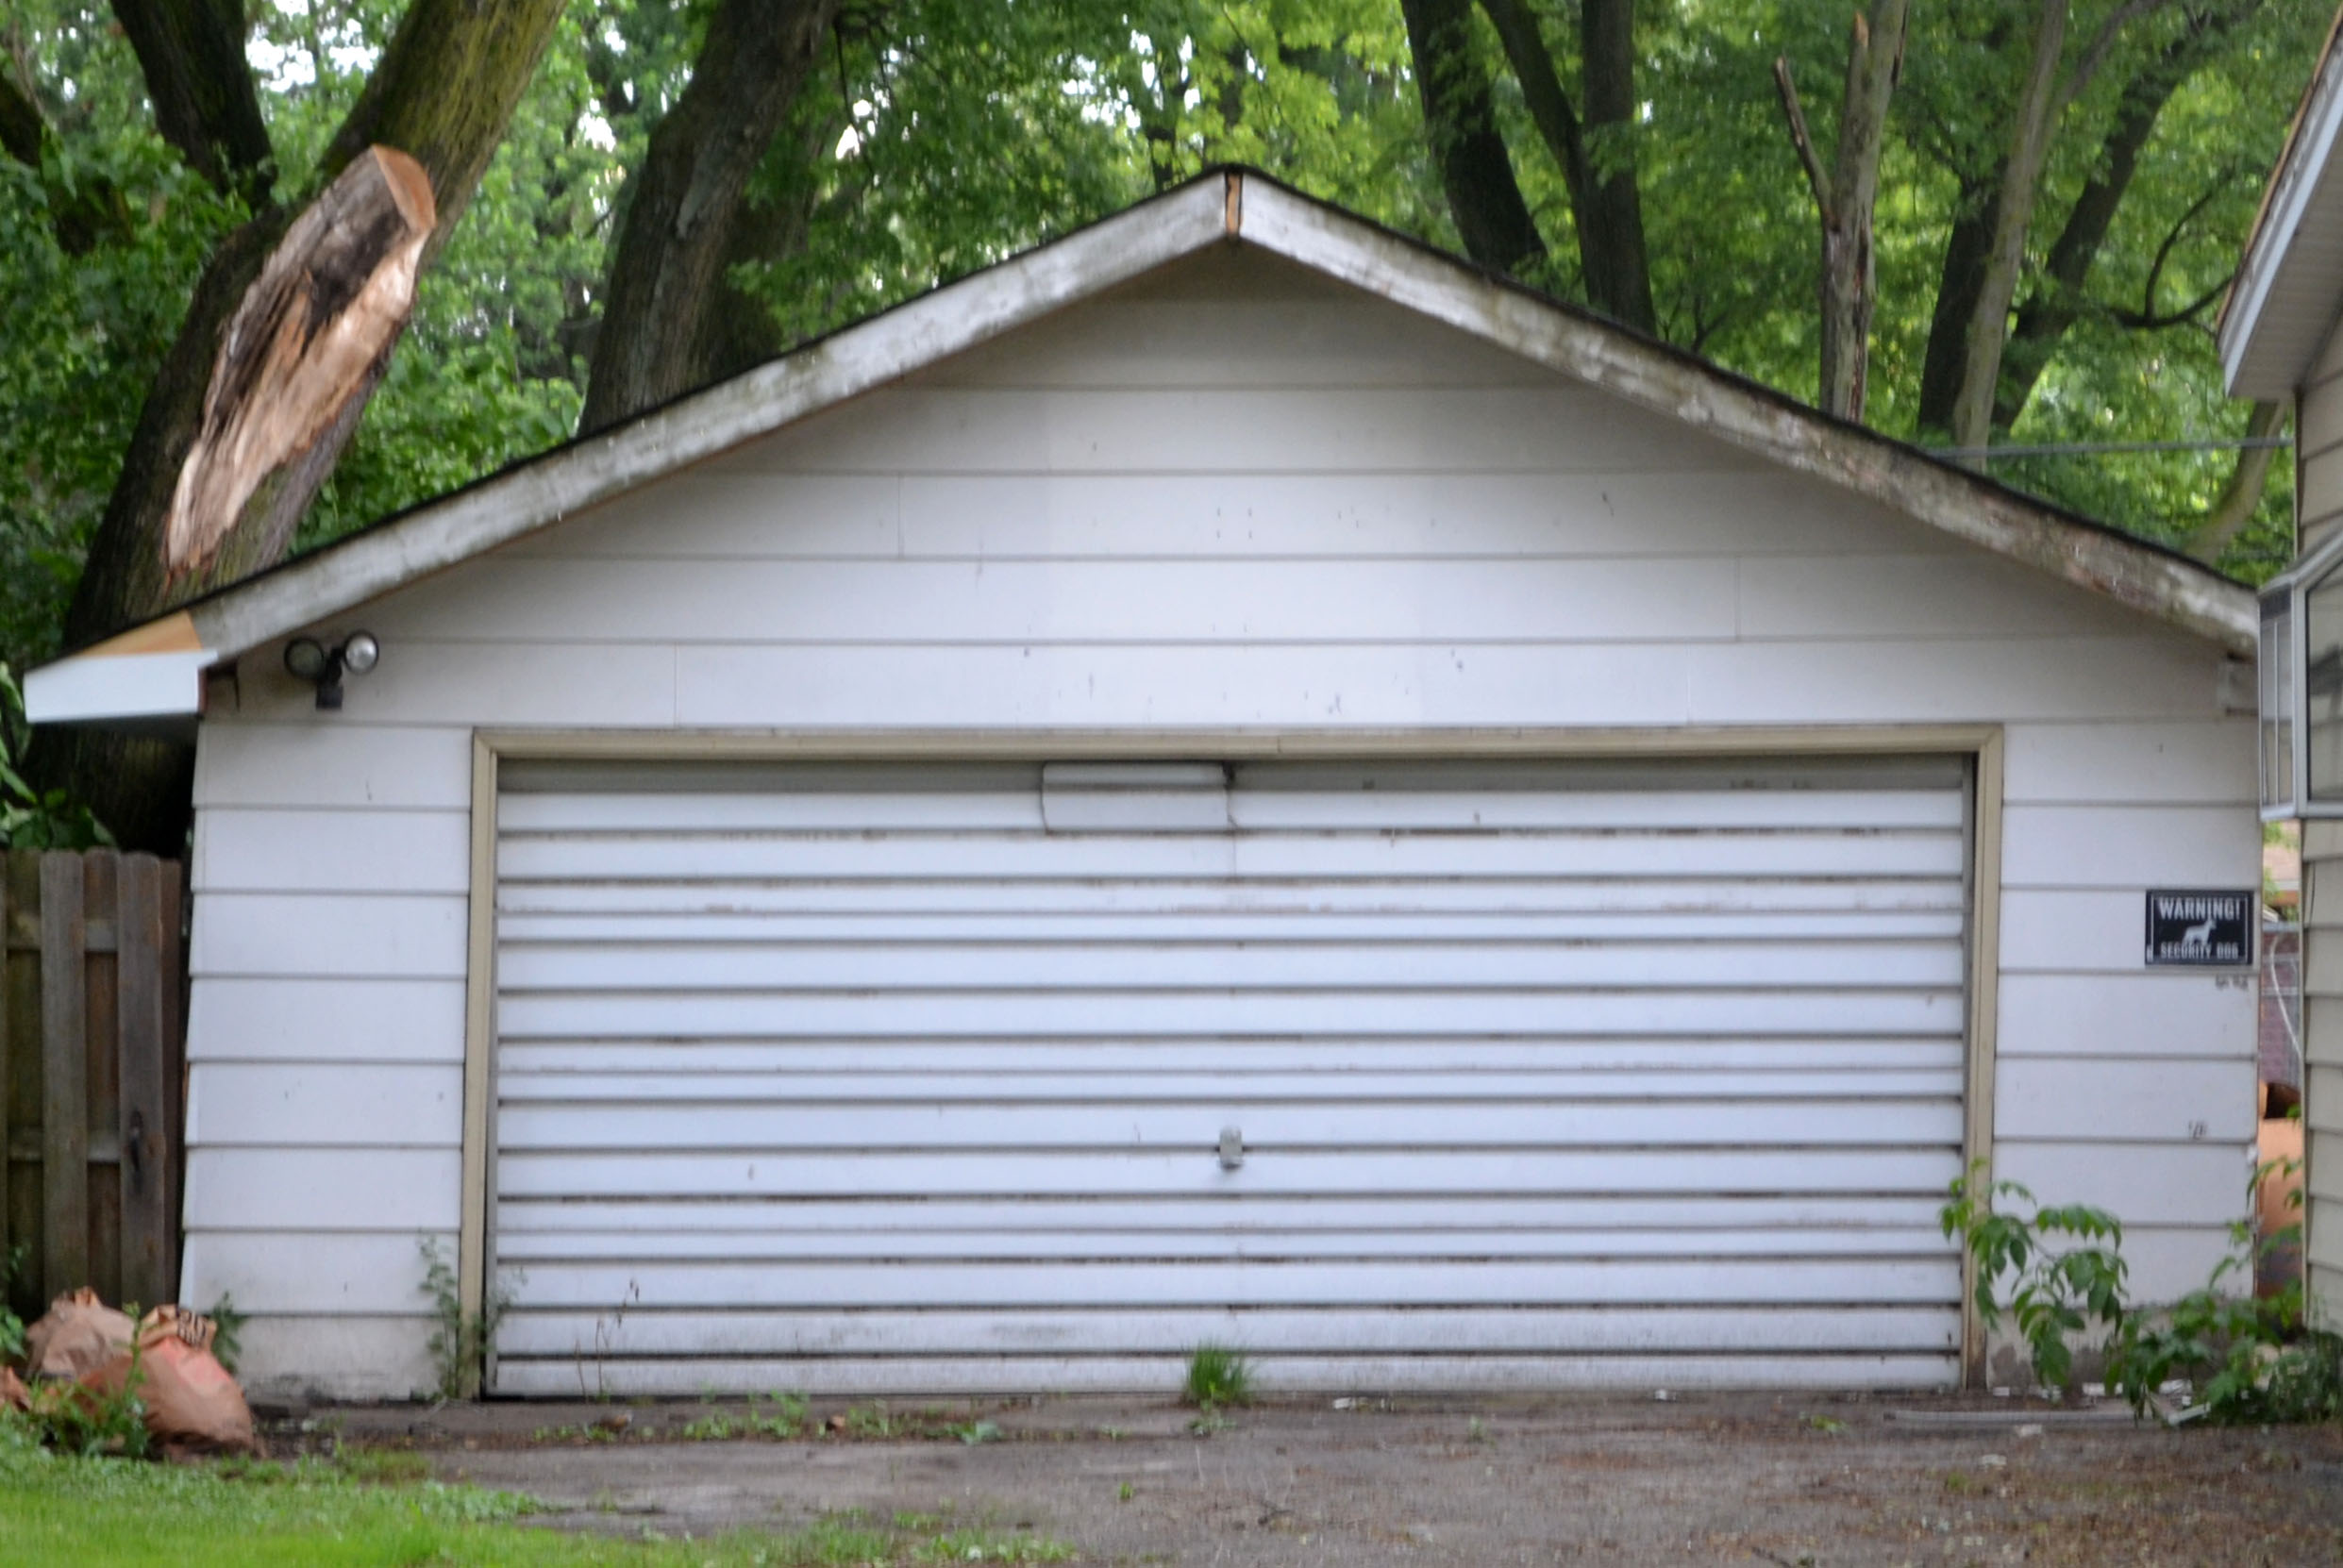 Two garage burglaries were reported Feb. 4 and Feb. 5, 2020 in Rosemoor on the South Side.